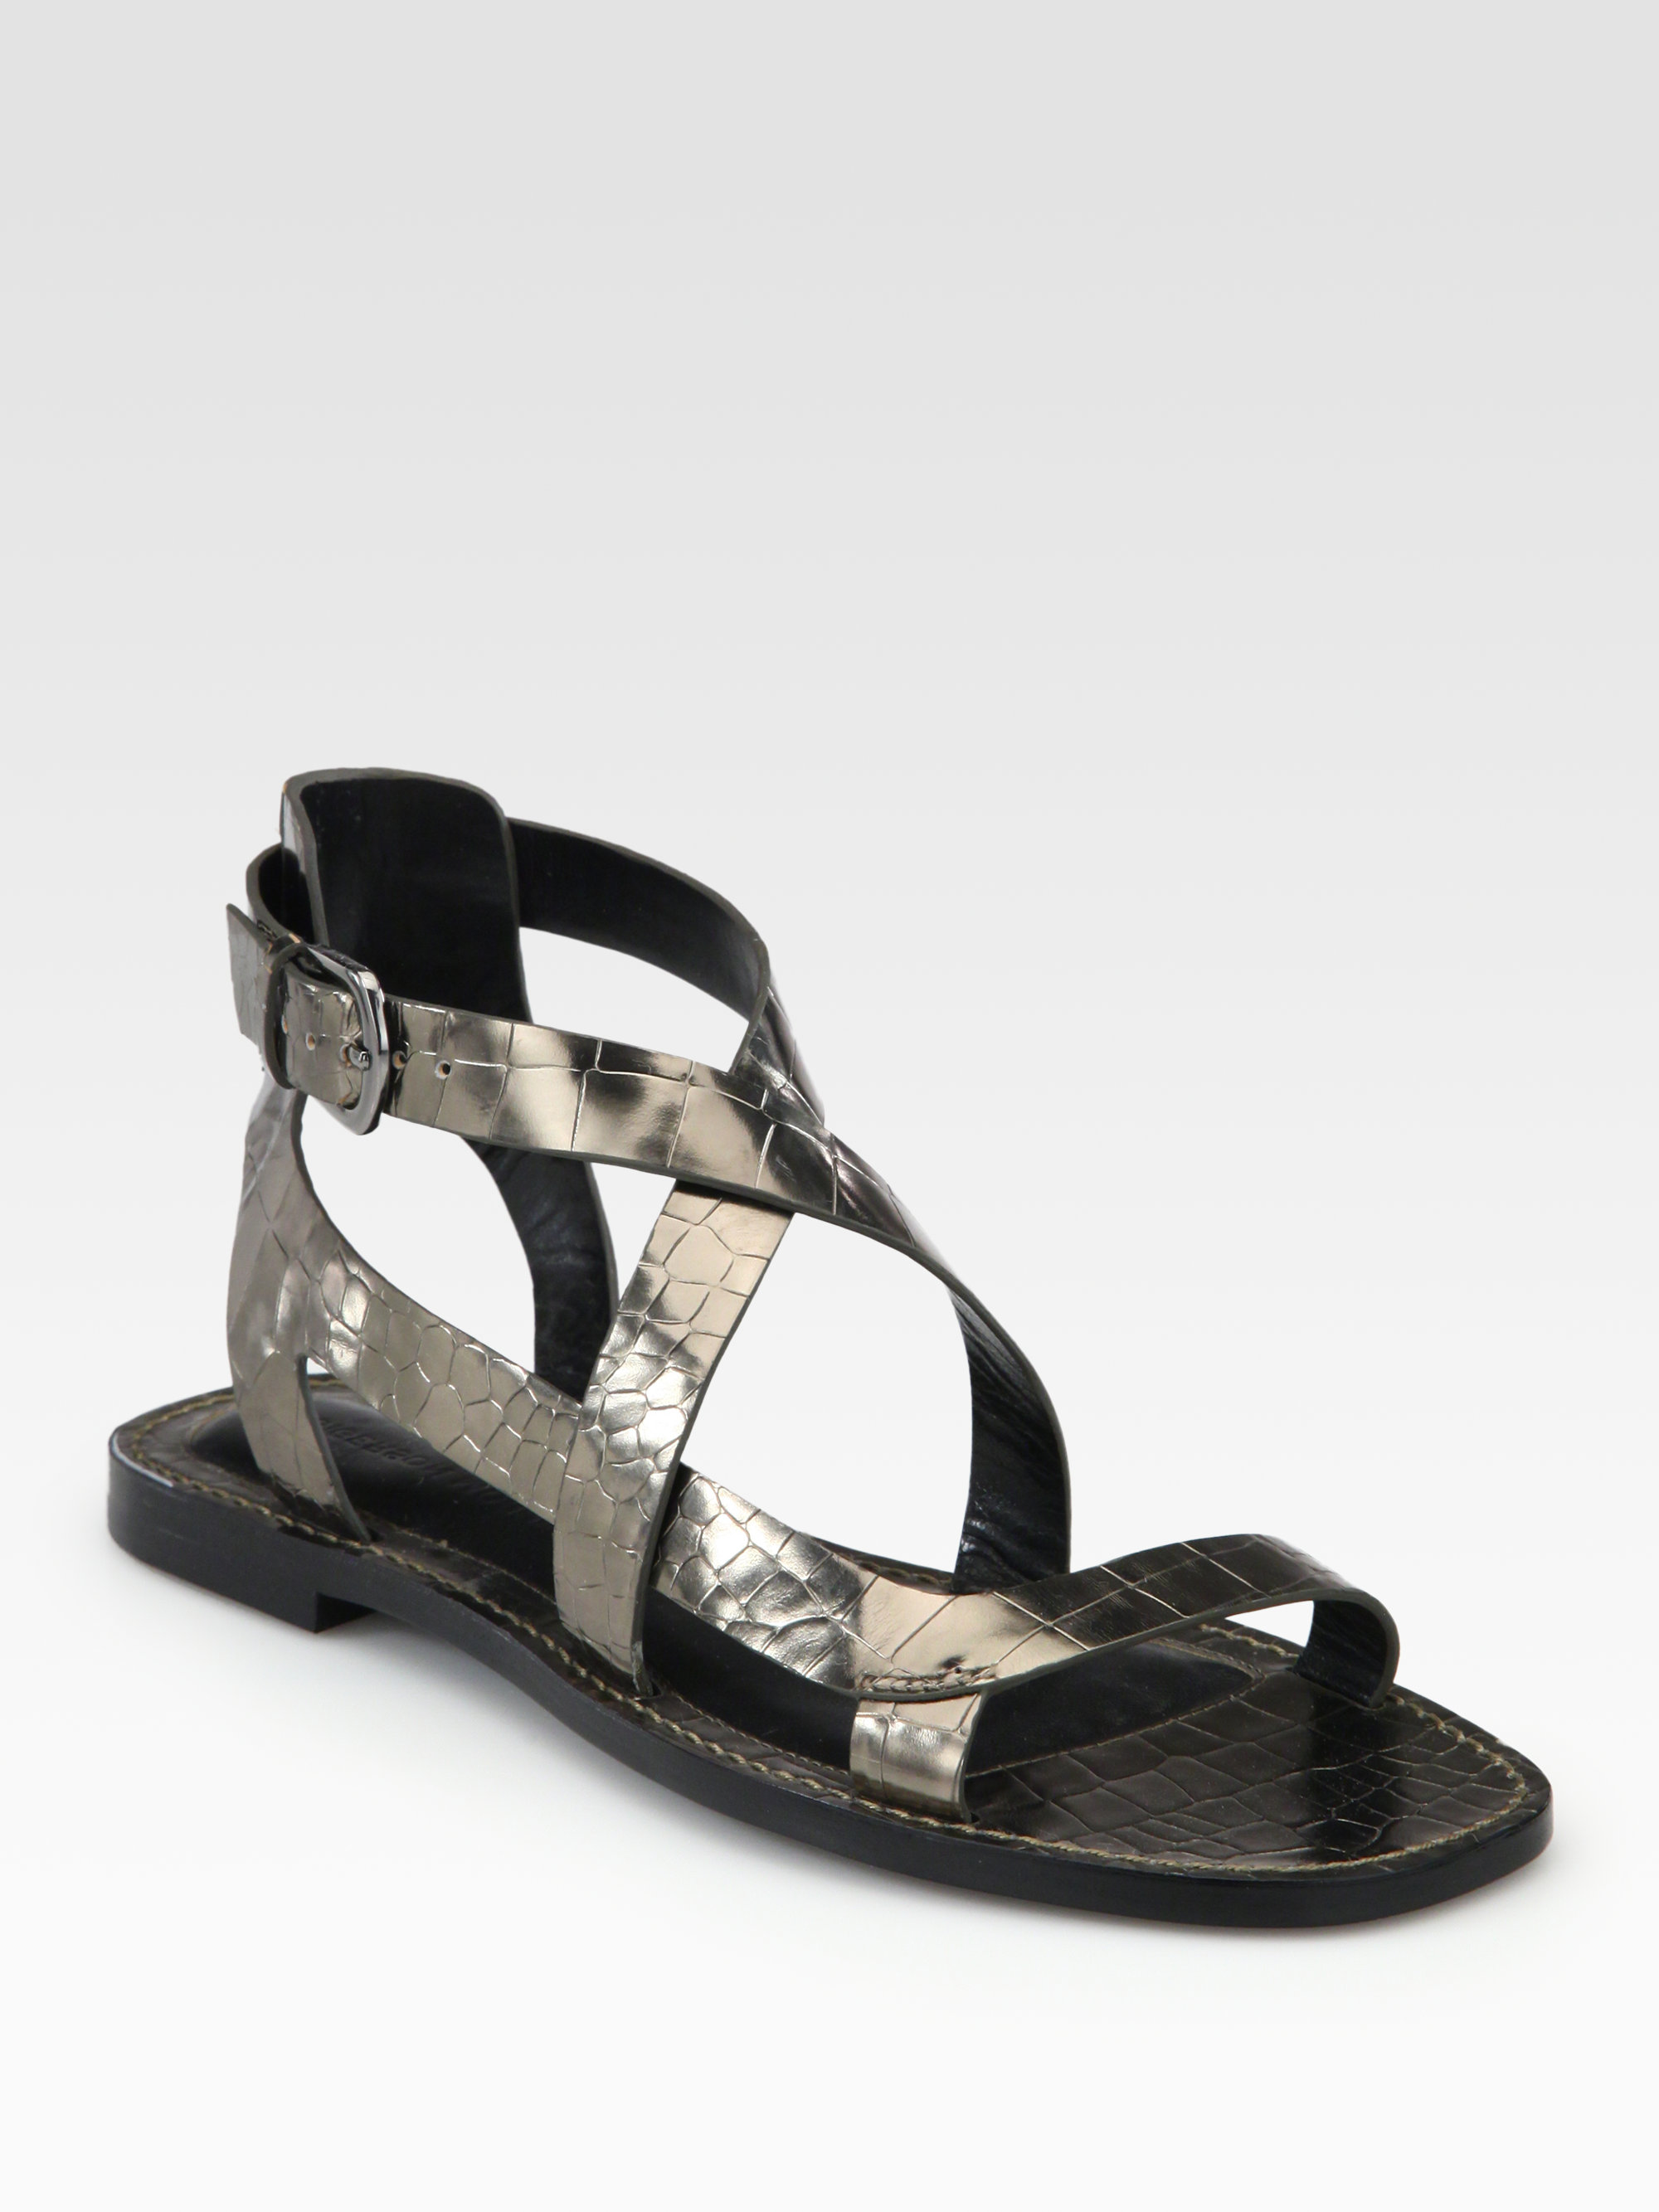 ebay online pictures sale online Sigerson Morrison Embossed Leather Sandals discount professional manchester great sale for sale aFFX1024H